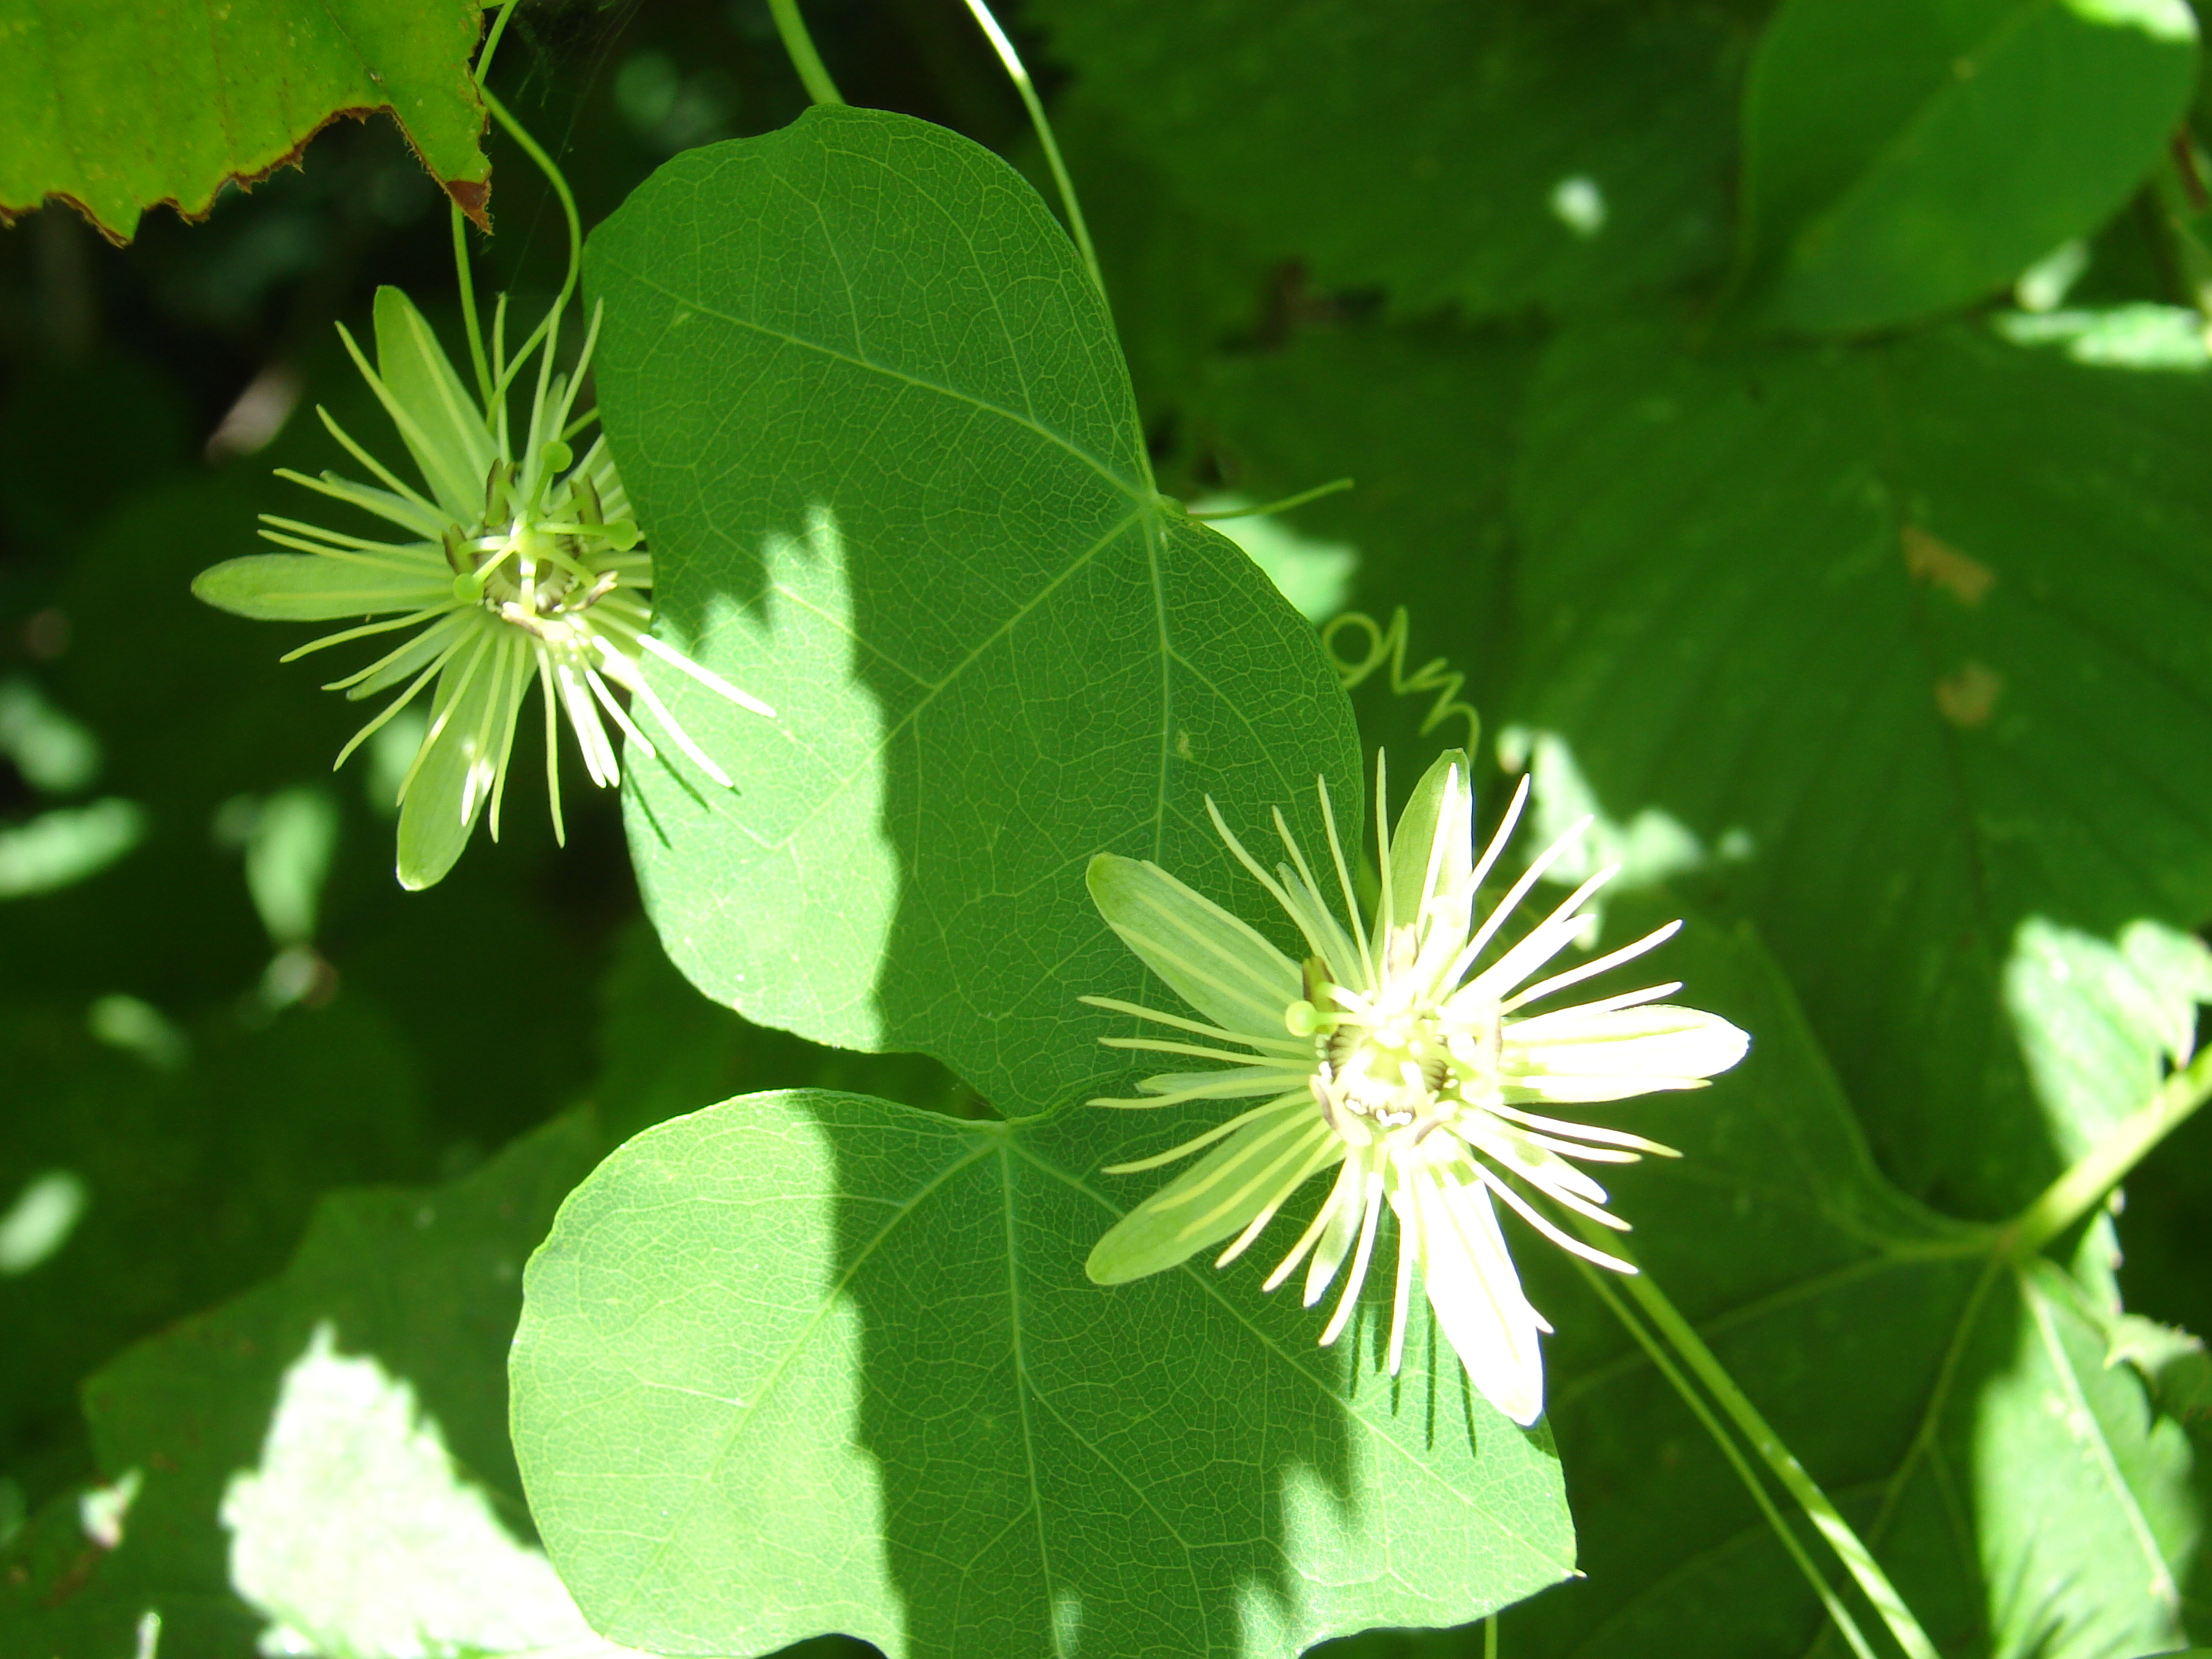 News From The Dunbar Cave State Natural Area Clarksville Tn Online